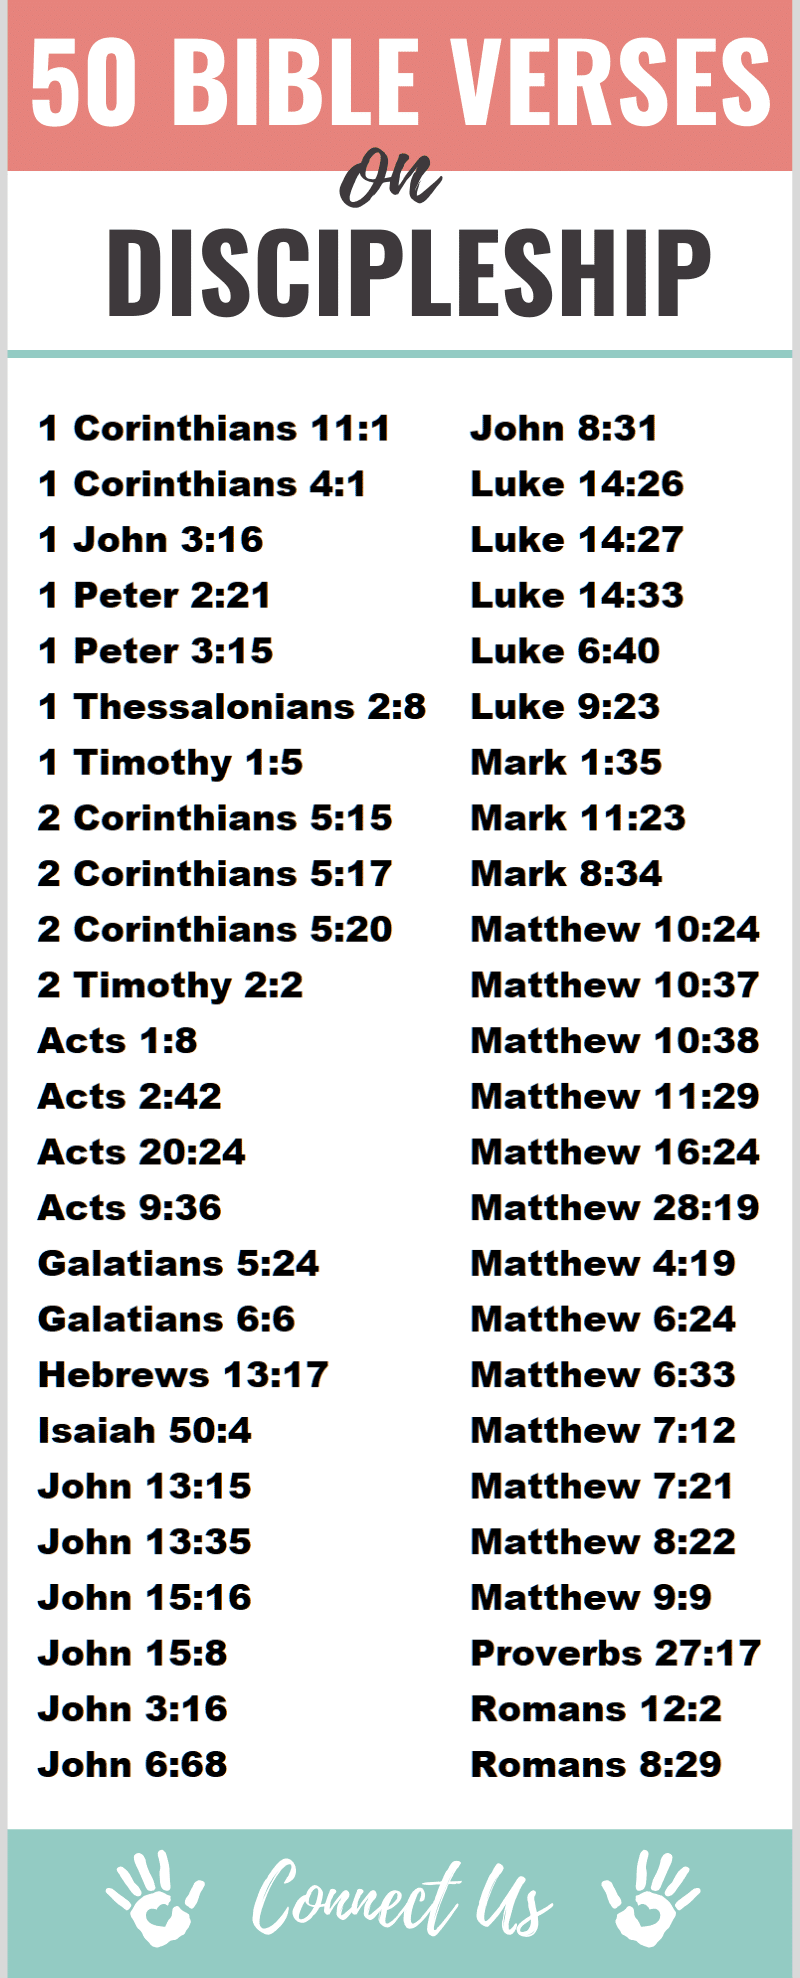 Bible Verses on Discipleship